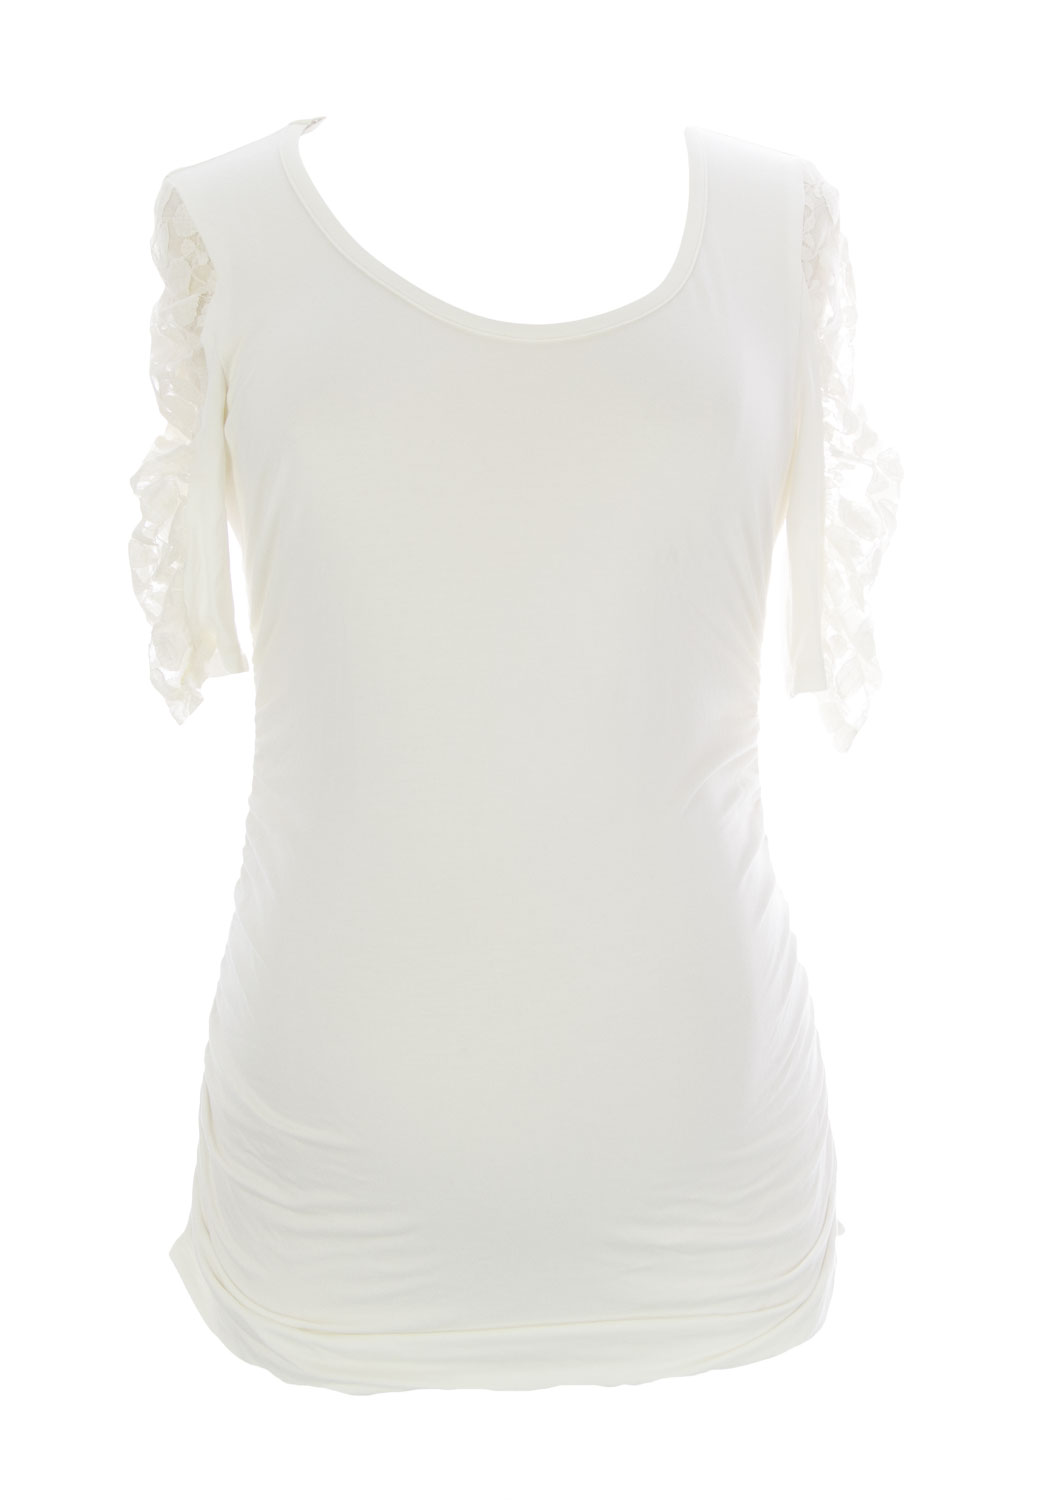 JULES & JIM Maternity Women's Top w/Lace Sleeves Medium Off-White